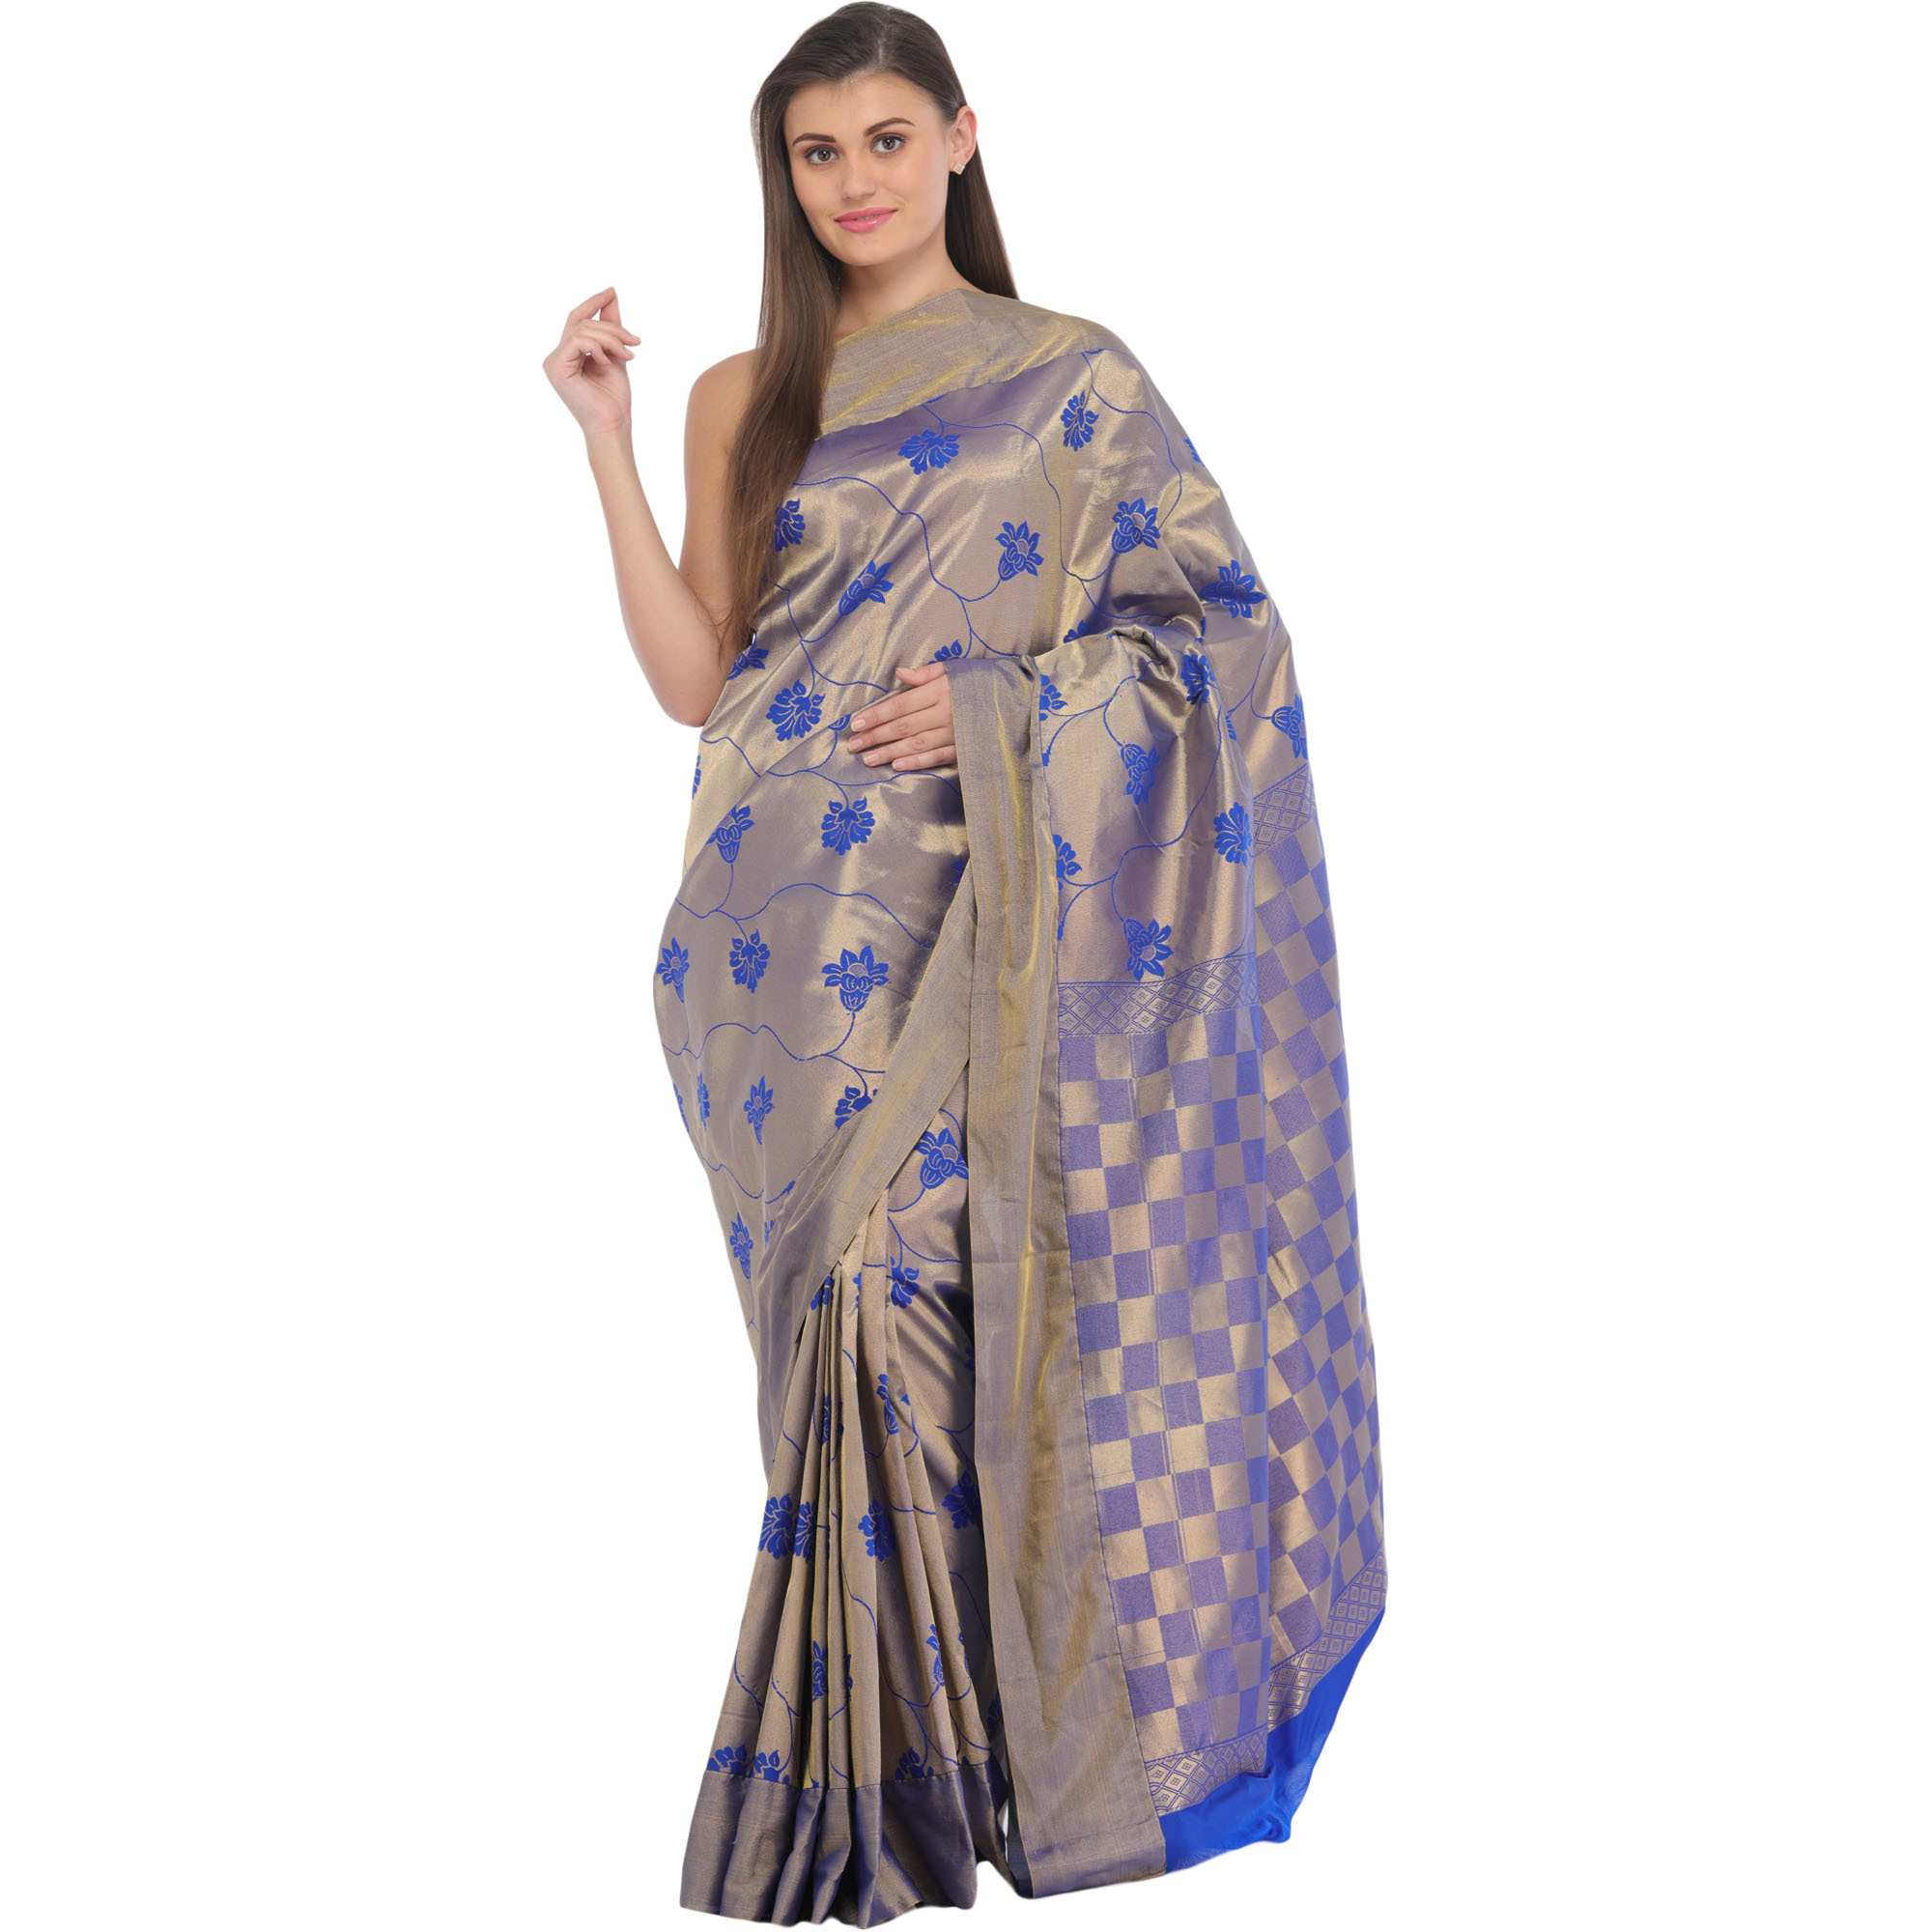 Metallic and Blue Brocaded Sari from Bangalore with Woven Flowers and Checks Weave on Pallu